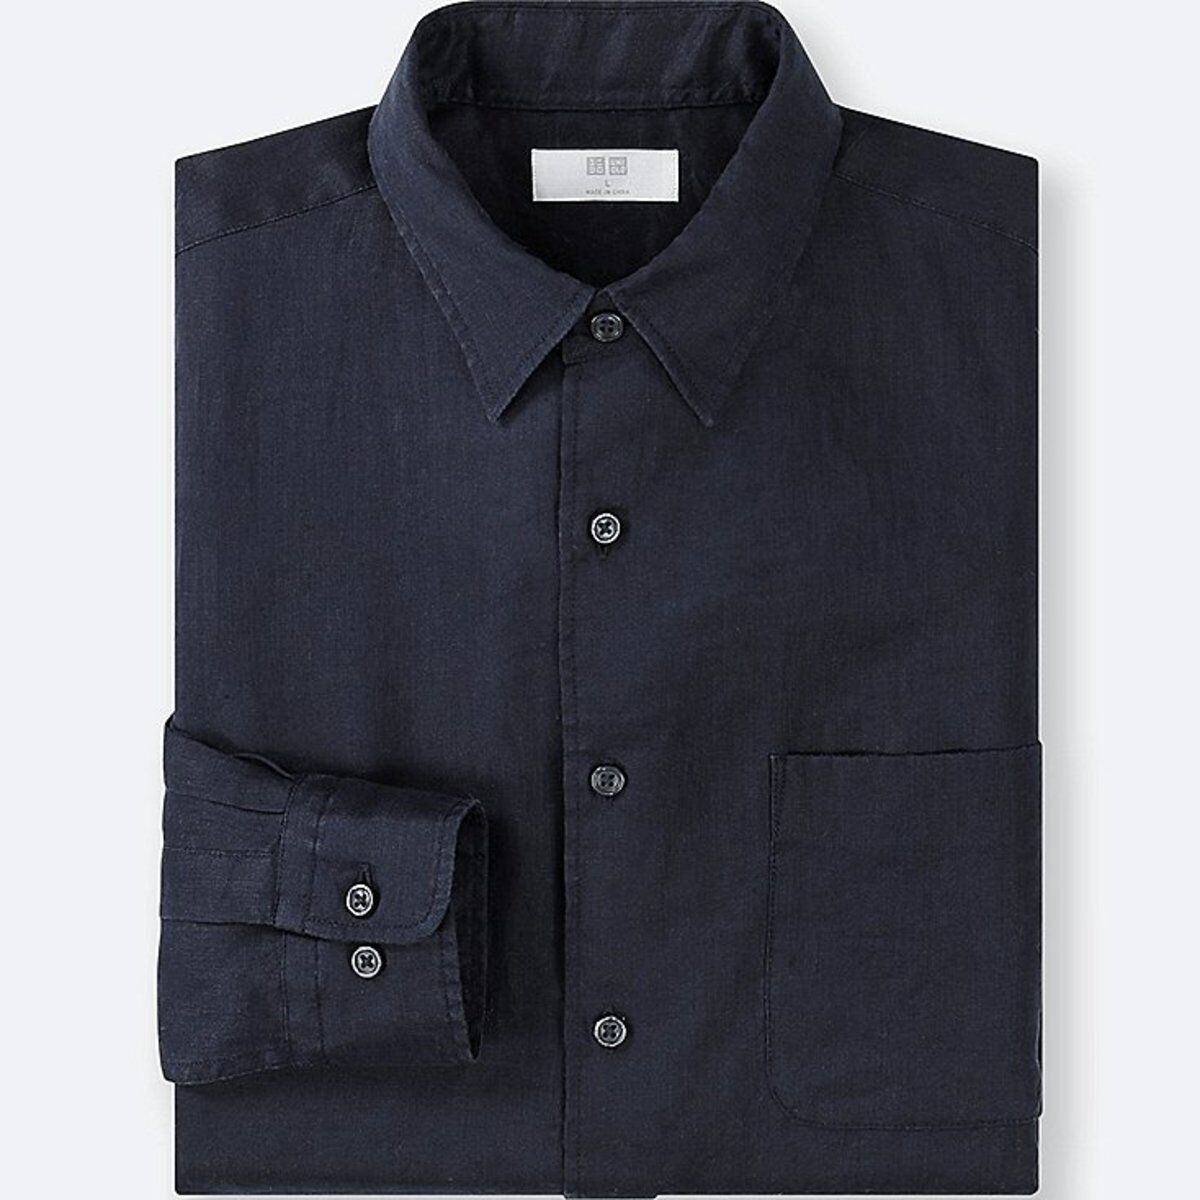 UNIQLO Men's 100% Premium French Linen Long-Sleeve Shirt L NAVY (69) NWT